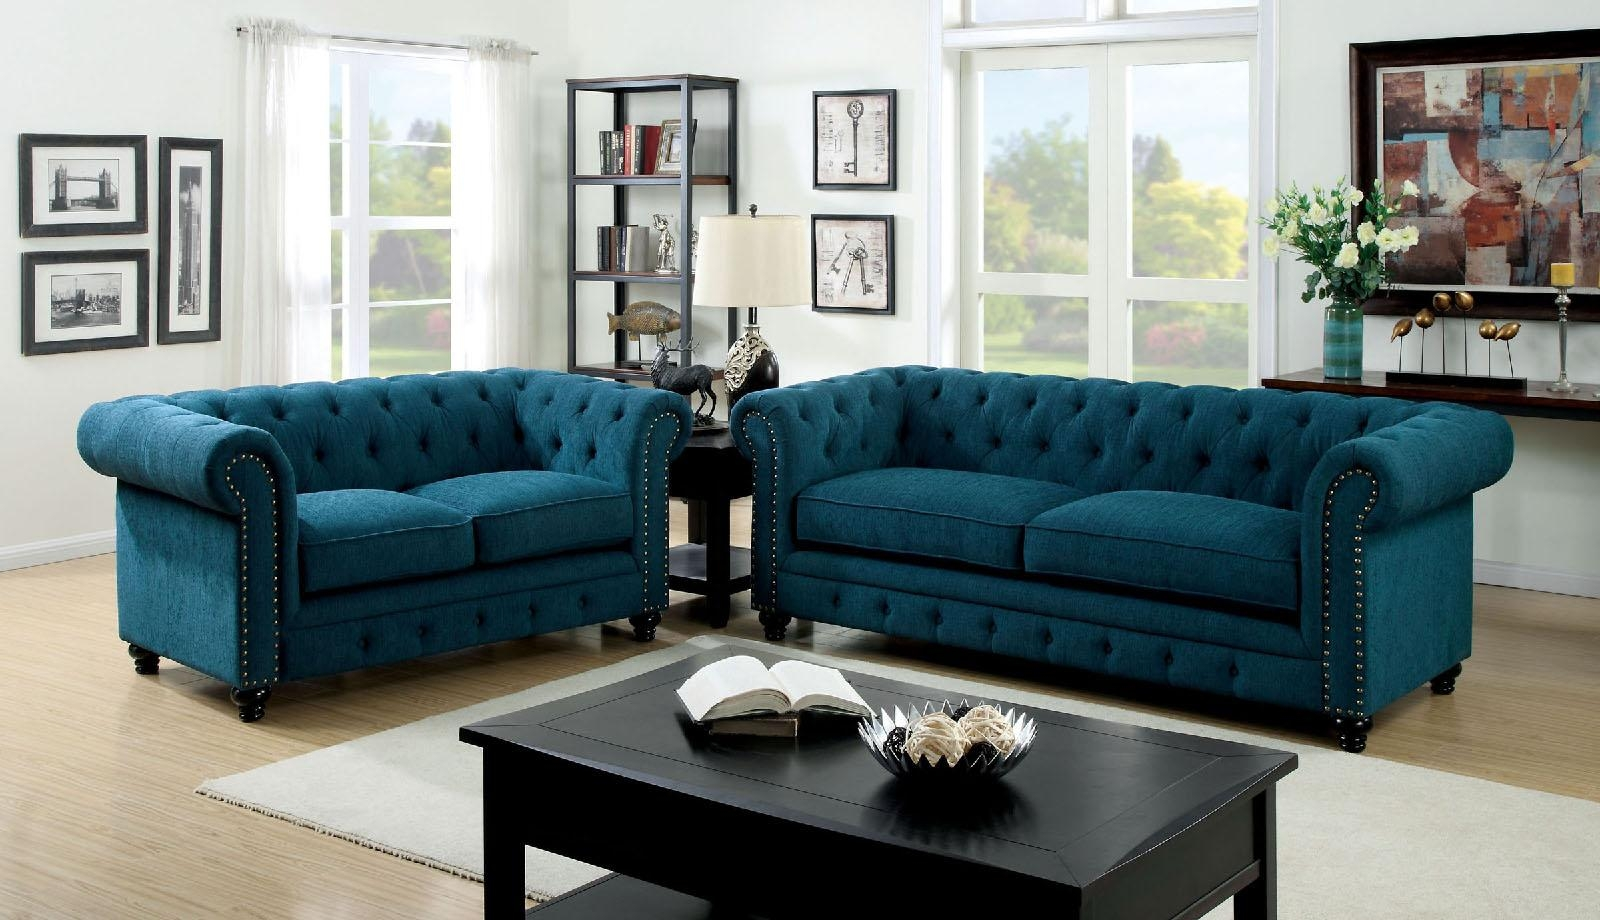 Stanford Blue Tufted Sofa Within Blue Tufted Sofas (Image 17 of 22)